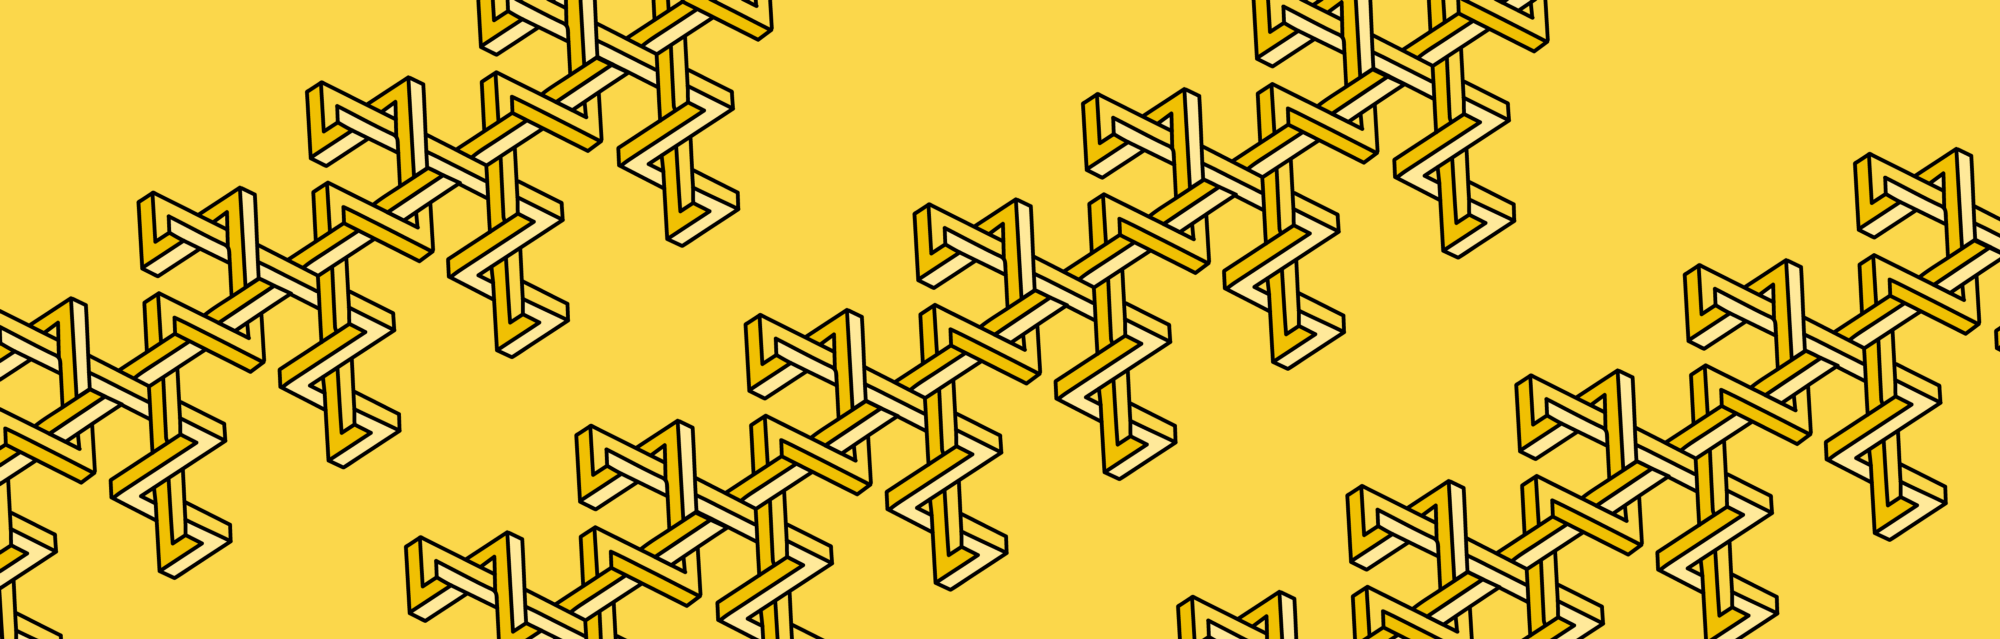 Shapes intertwine against a yellow background, making a geometric pattern